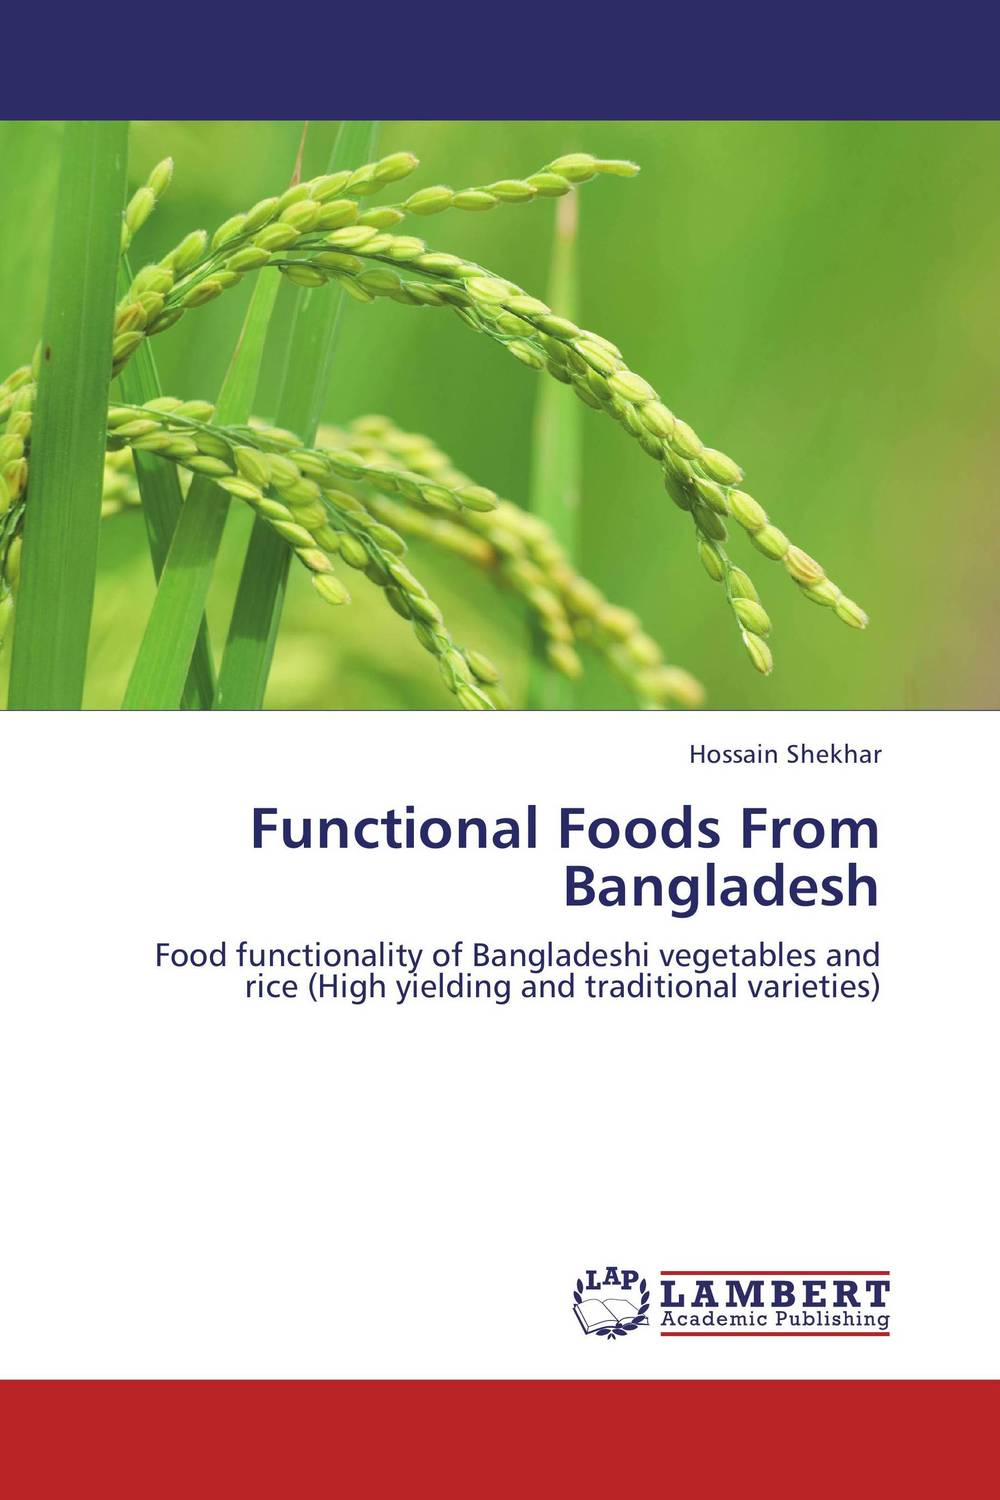 Functional Foods From Bangladesh 1000g 98% fish collagen powder high purity for functional food